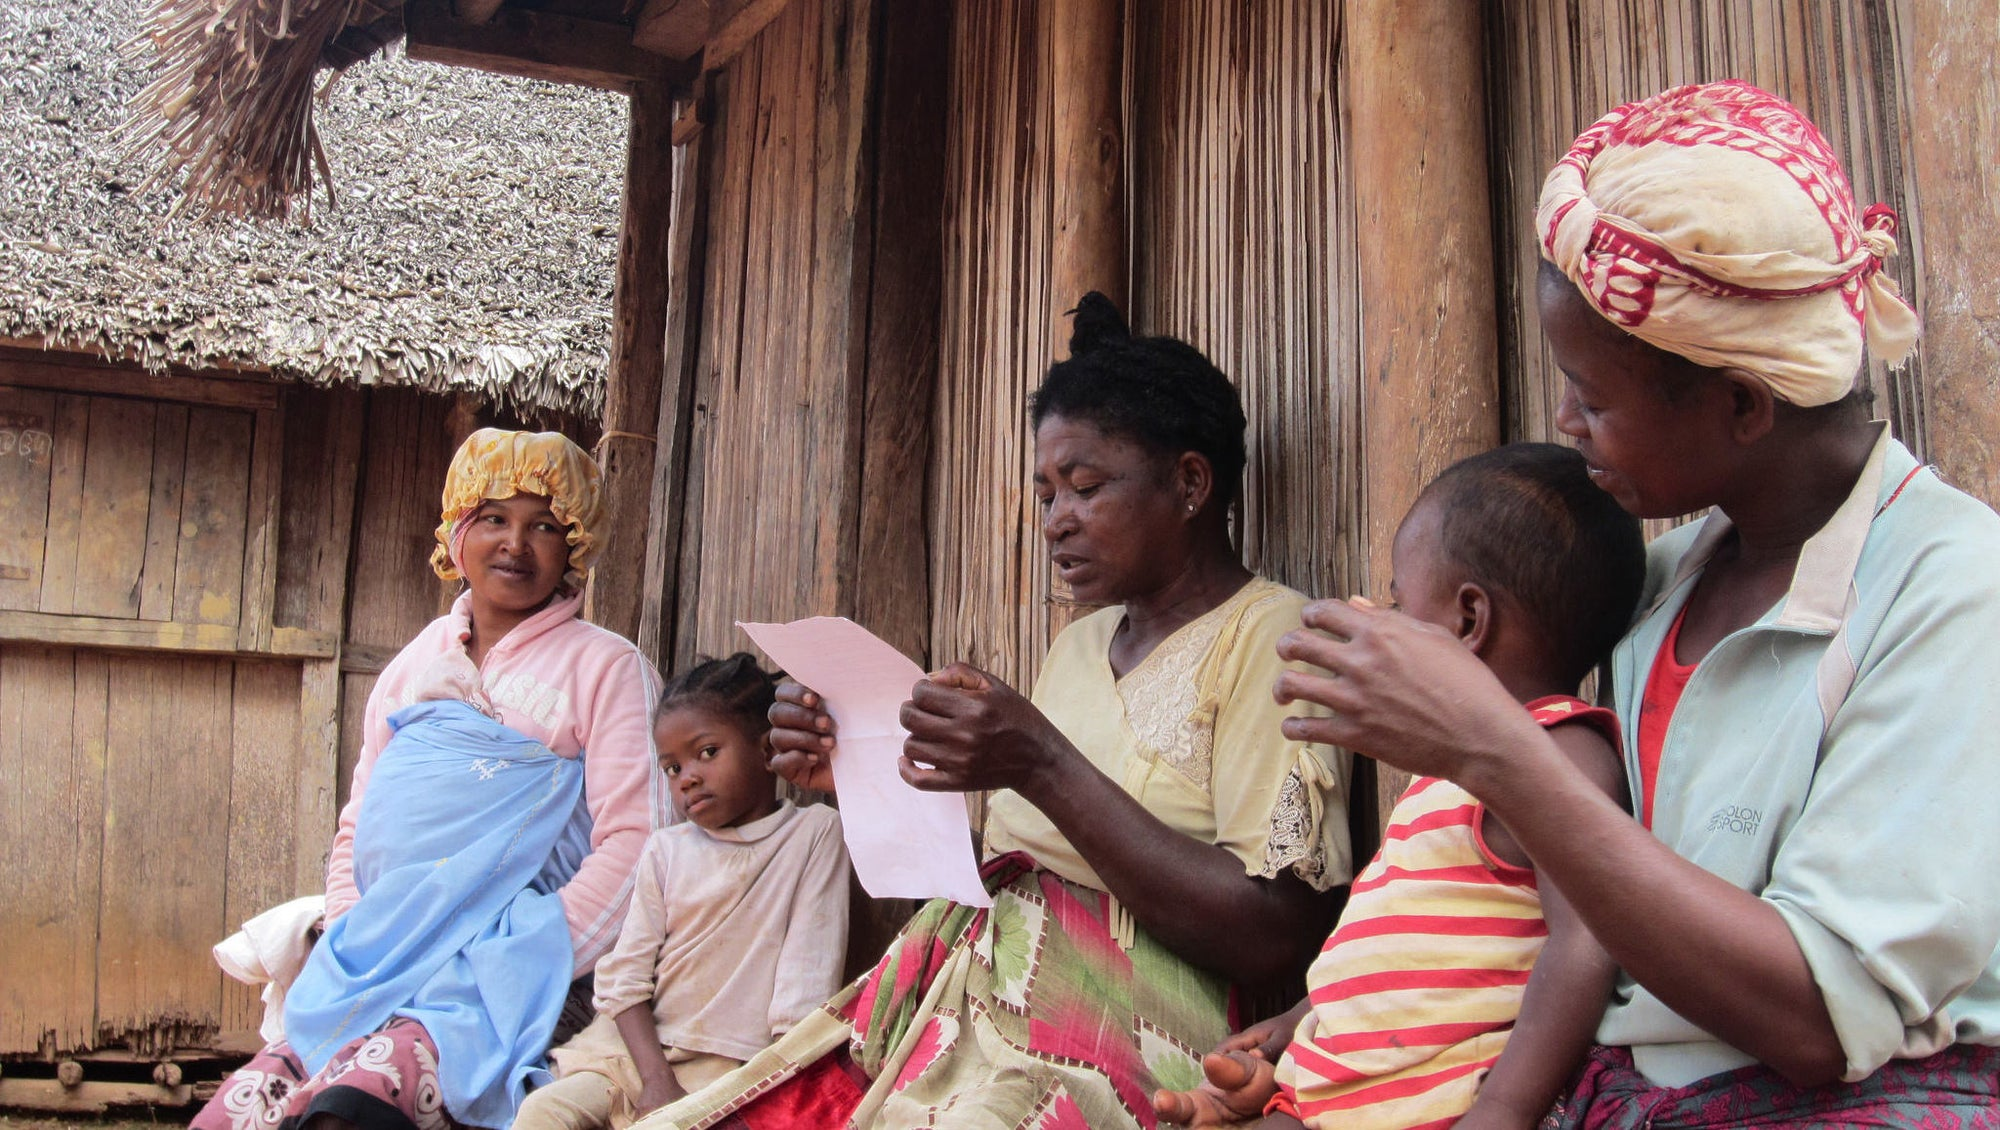 Notes from the Field: Bringing Light to the Rural Artisans of Madagascar